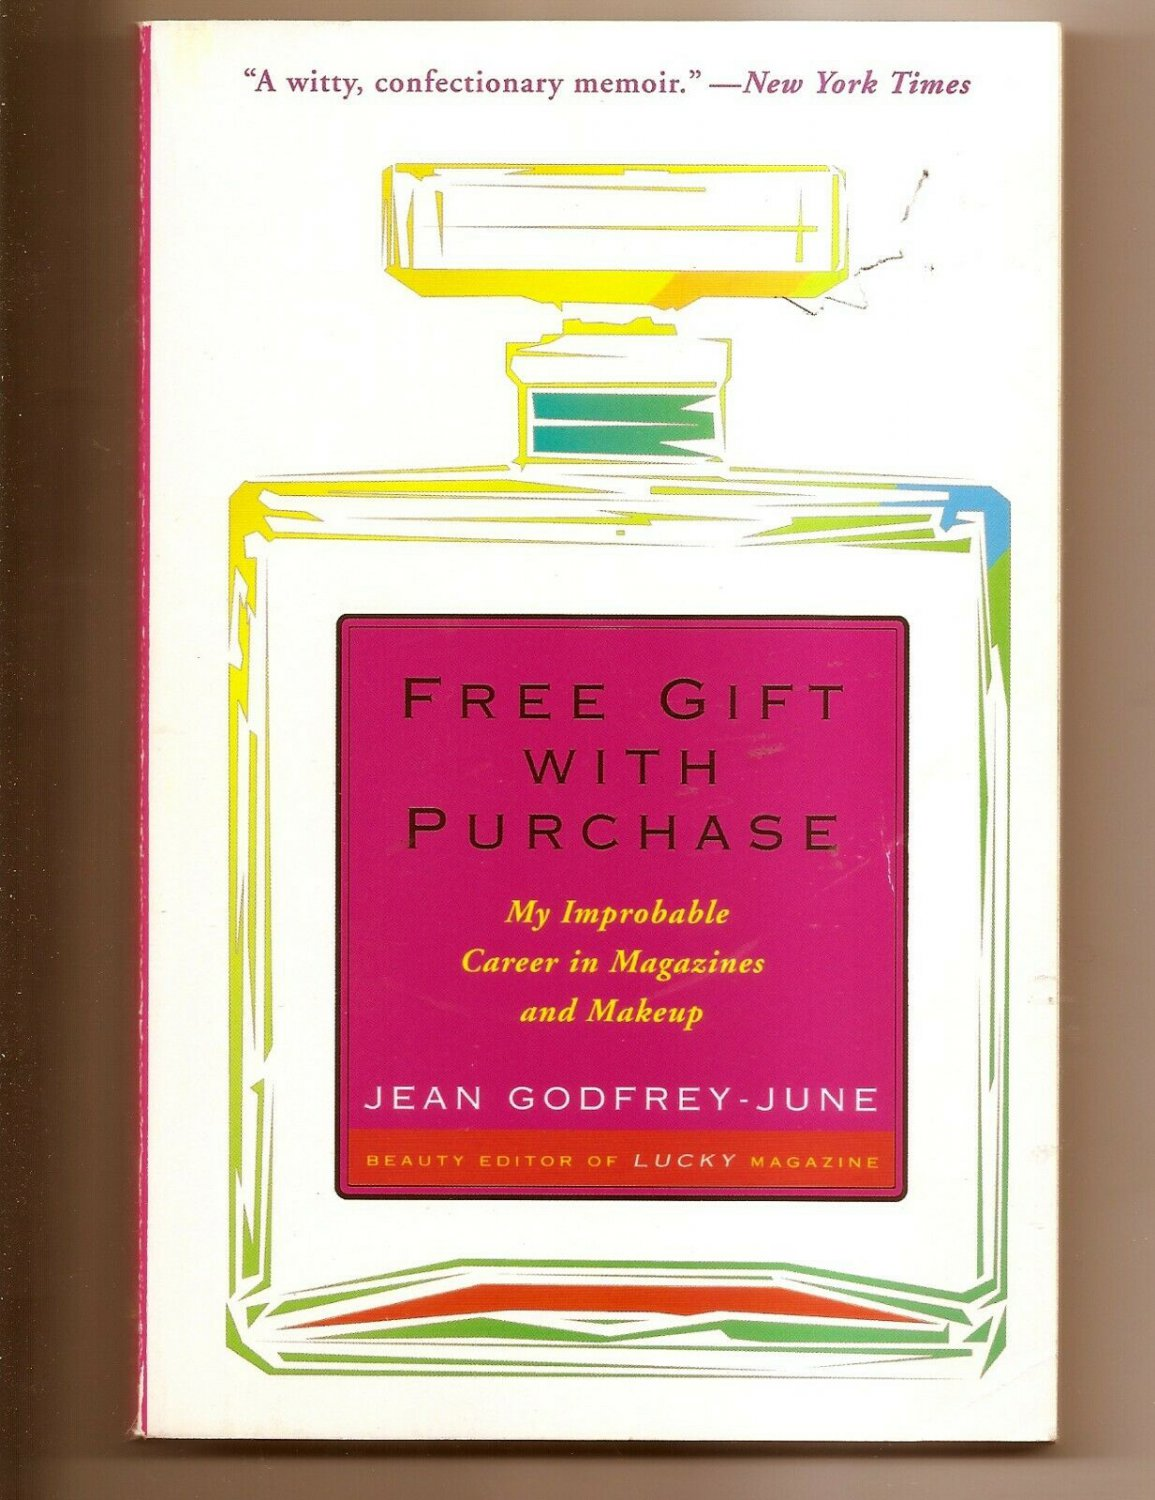 Free Gift with Purchase : My Improbable Career in Magazines and Makeup